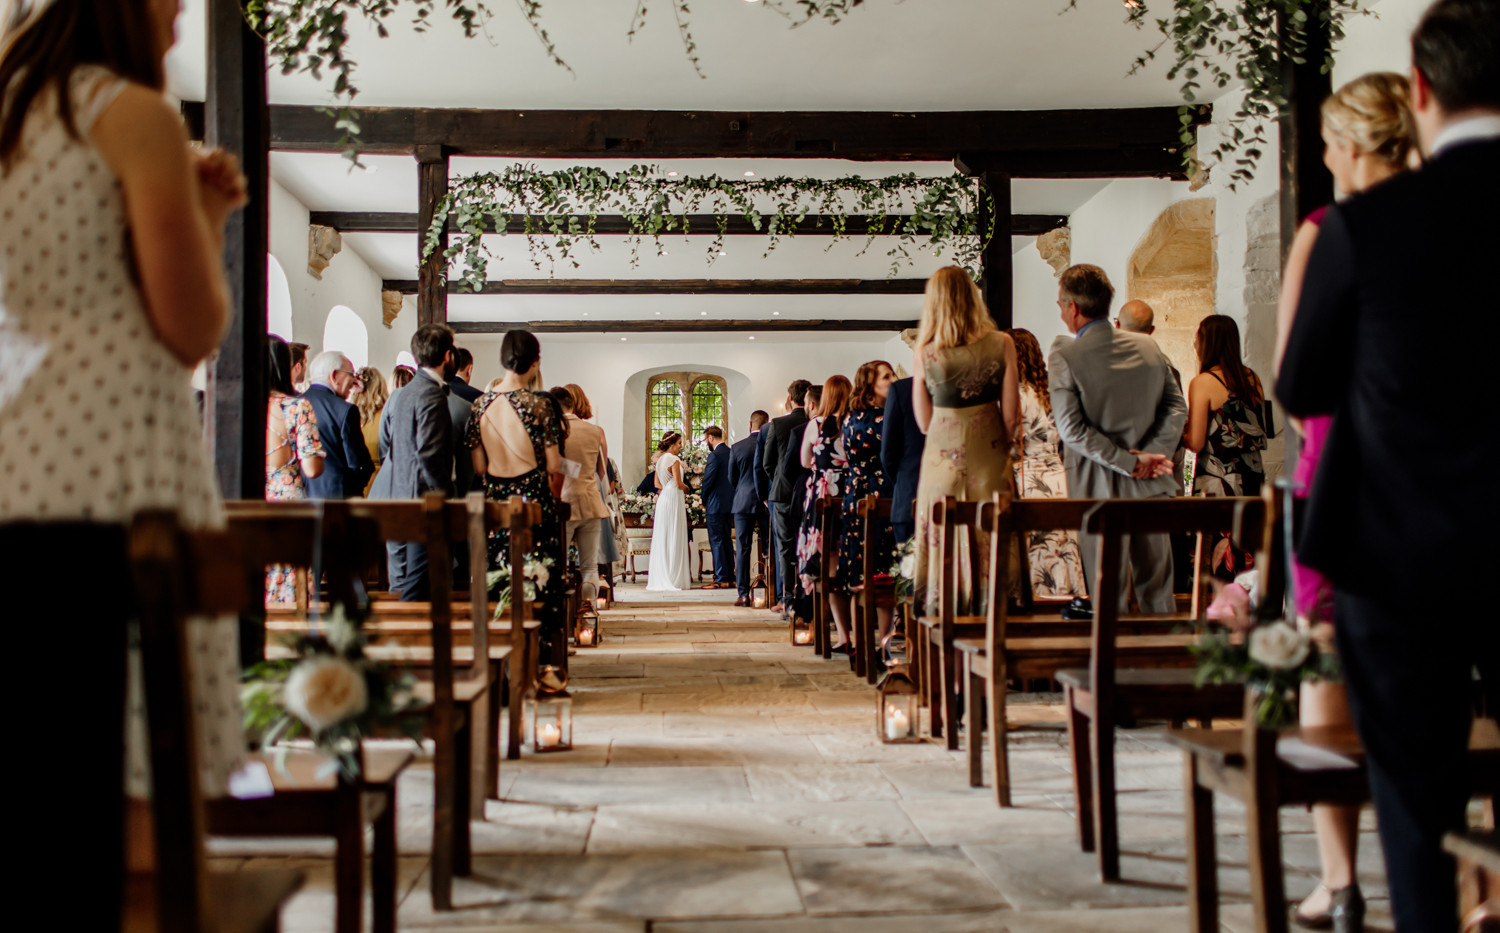 A lovely long aisle, leading up the Altar window